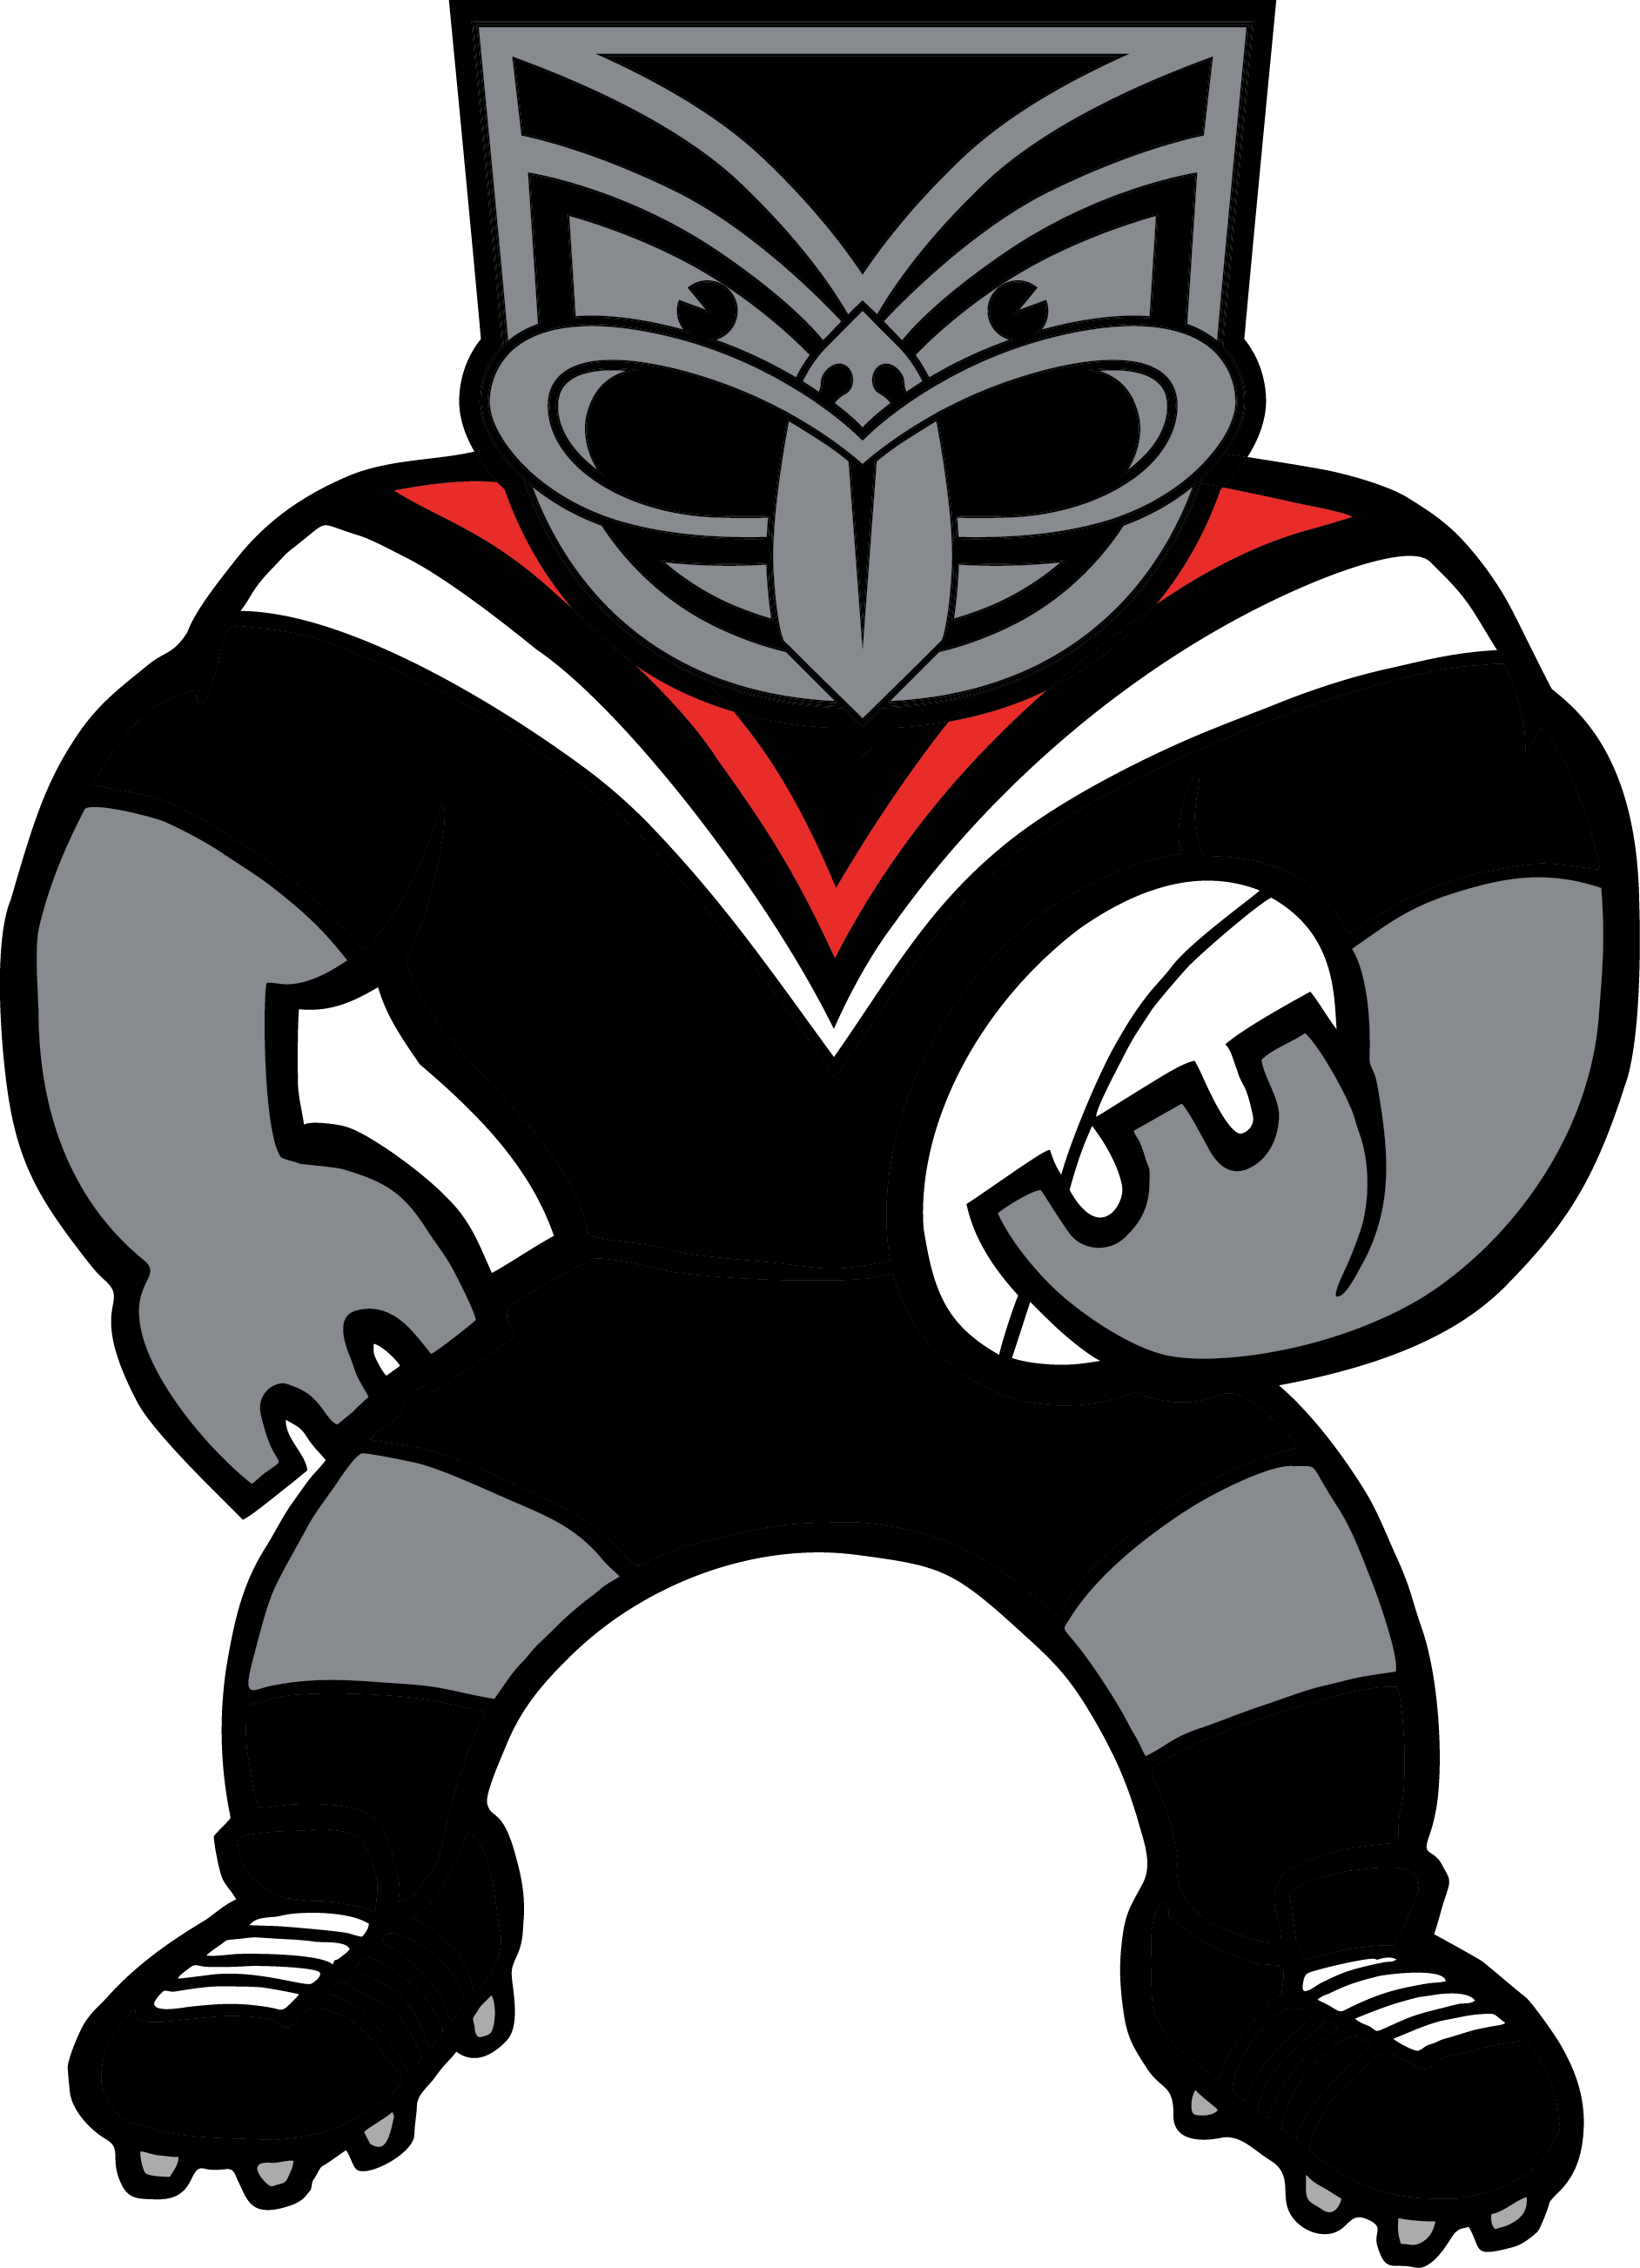 Nrl New Zealand Warriors Mascot Team Socks Pairs